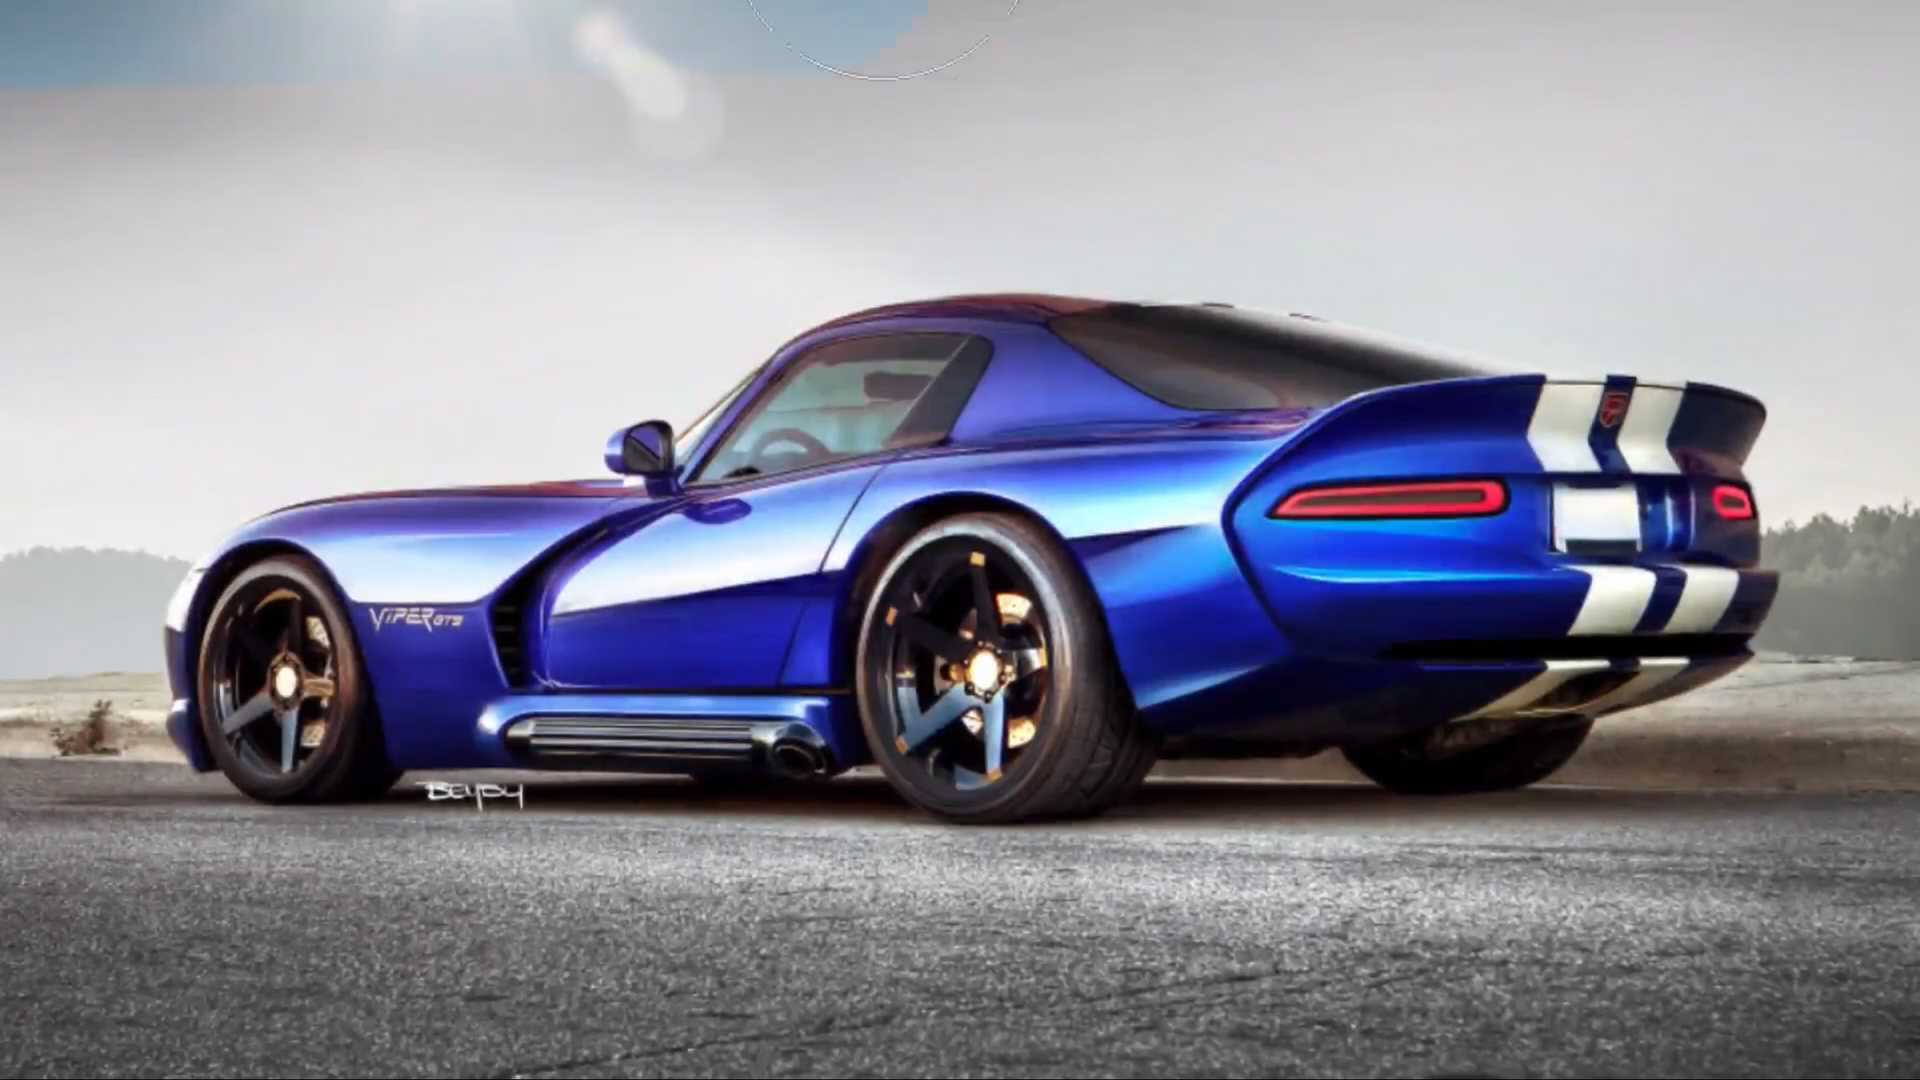 2001 Dodge Viper Reimagined With A Modern Design In New Rendering - Motor1 thumbnail